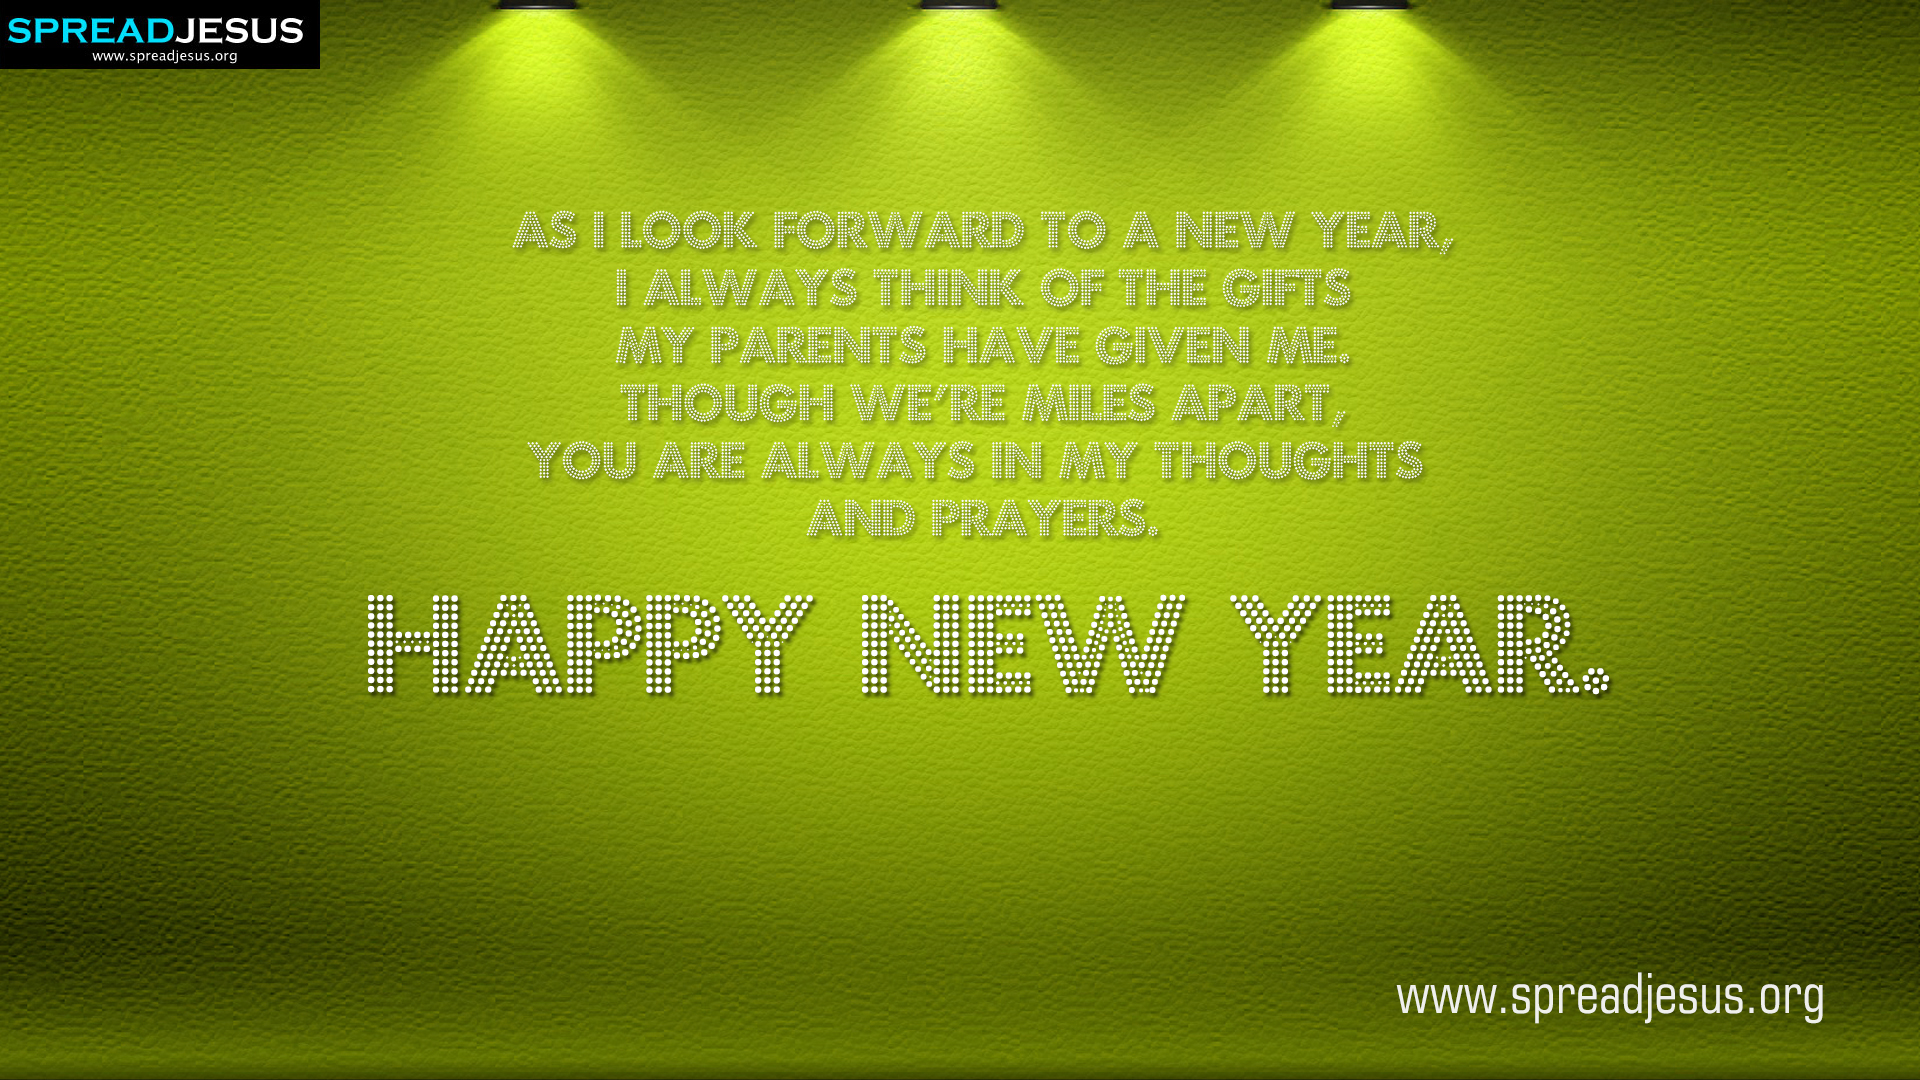 Happy New Year Latest HD-Wallpapers Download Happy New Year 2017 HD Wallpapers Download,Happy New Year 2017 HD Wallpapers Download-1 Happy New Year HD wallpapers Free Download